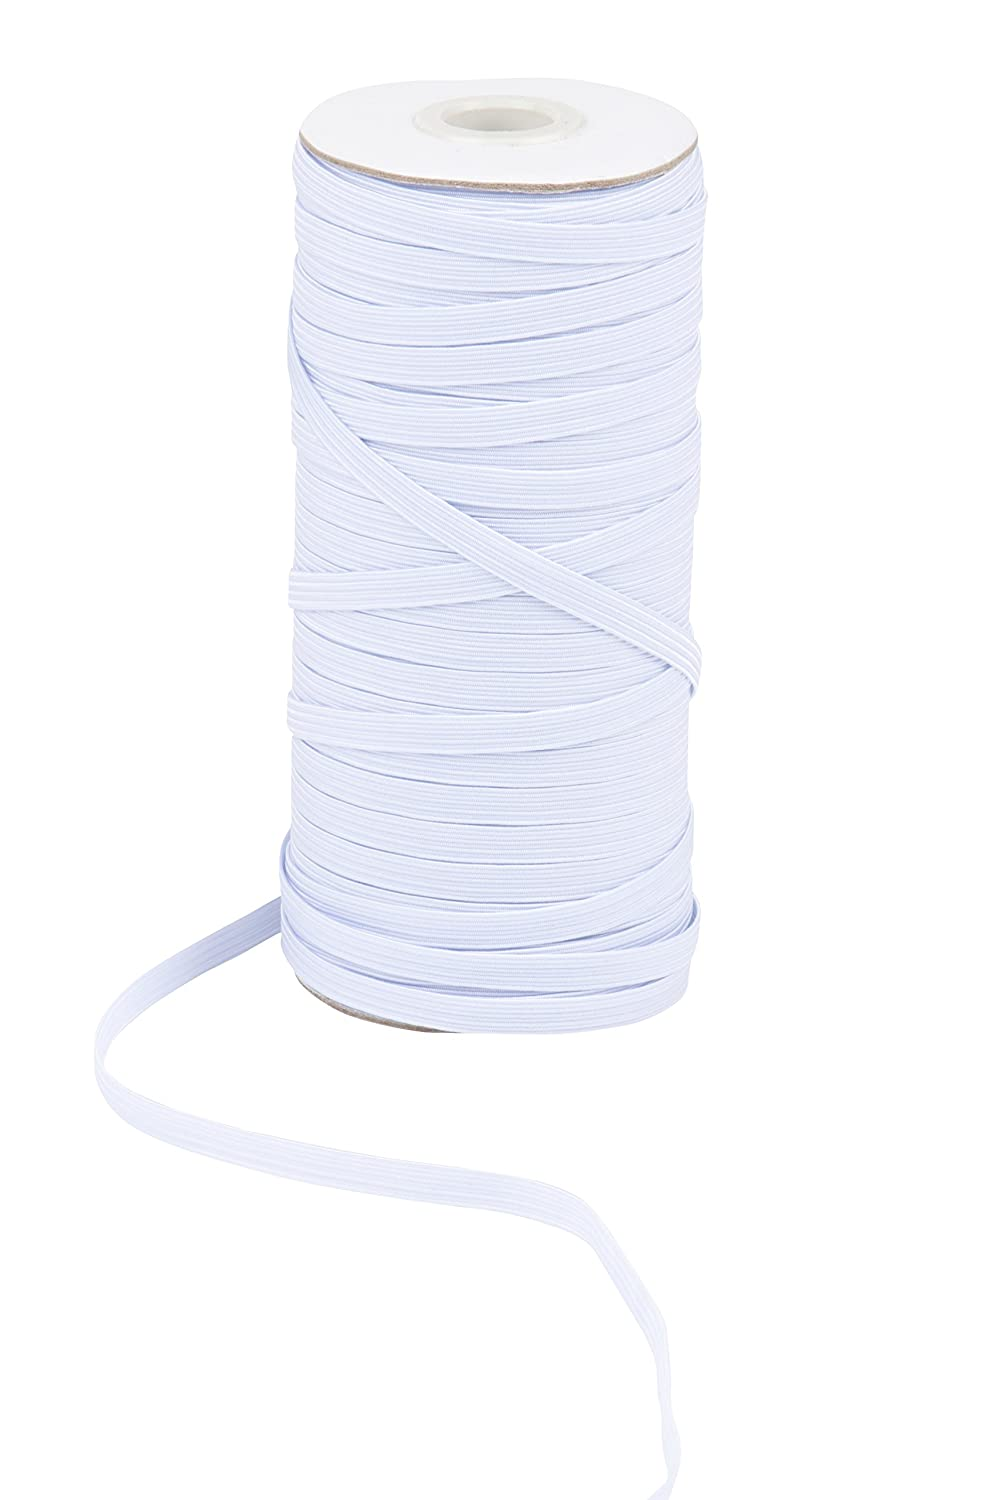 Clothes White Sewing Elastic Band 109 Yards in Length 0.5 Inches Wide Waistband Elastic Spool Braided Stretchy High Elasticity Roll for DIY Crafts